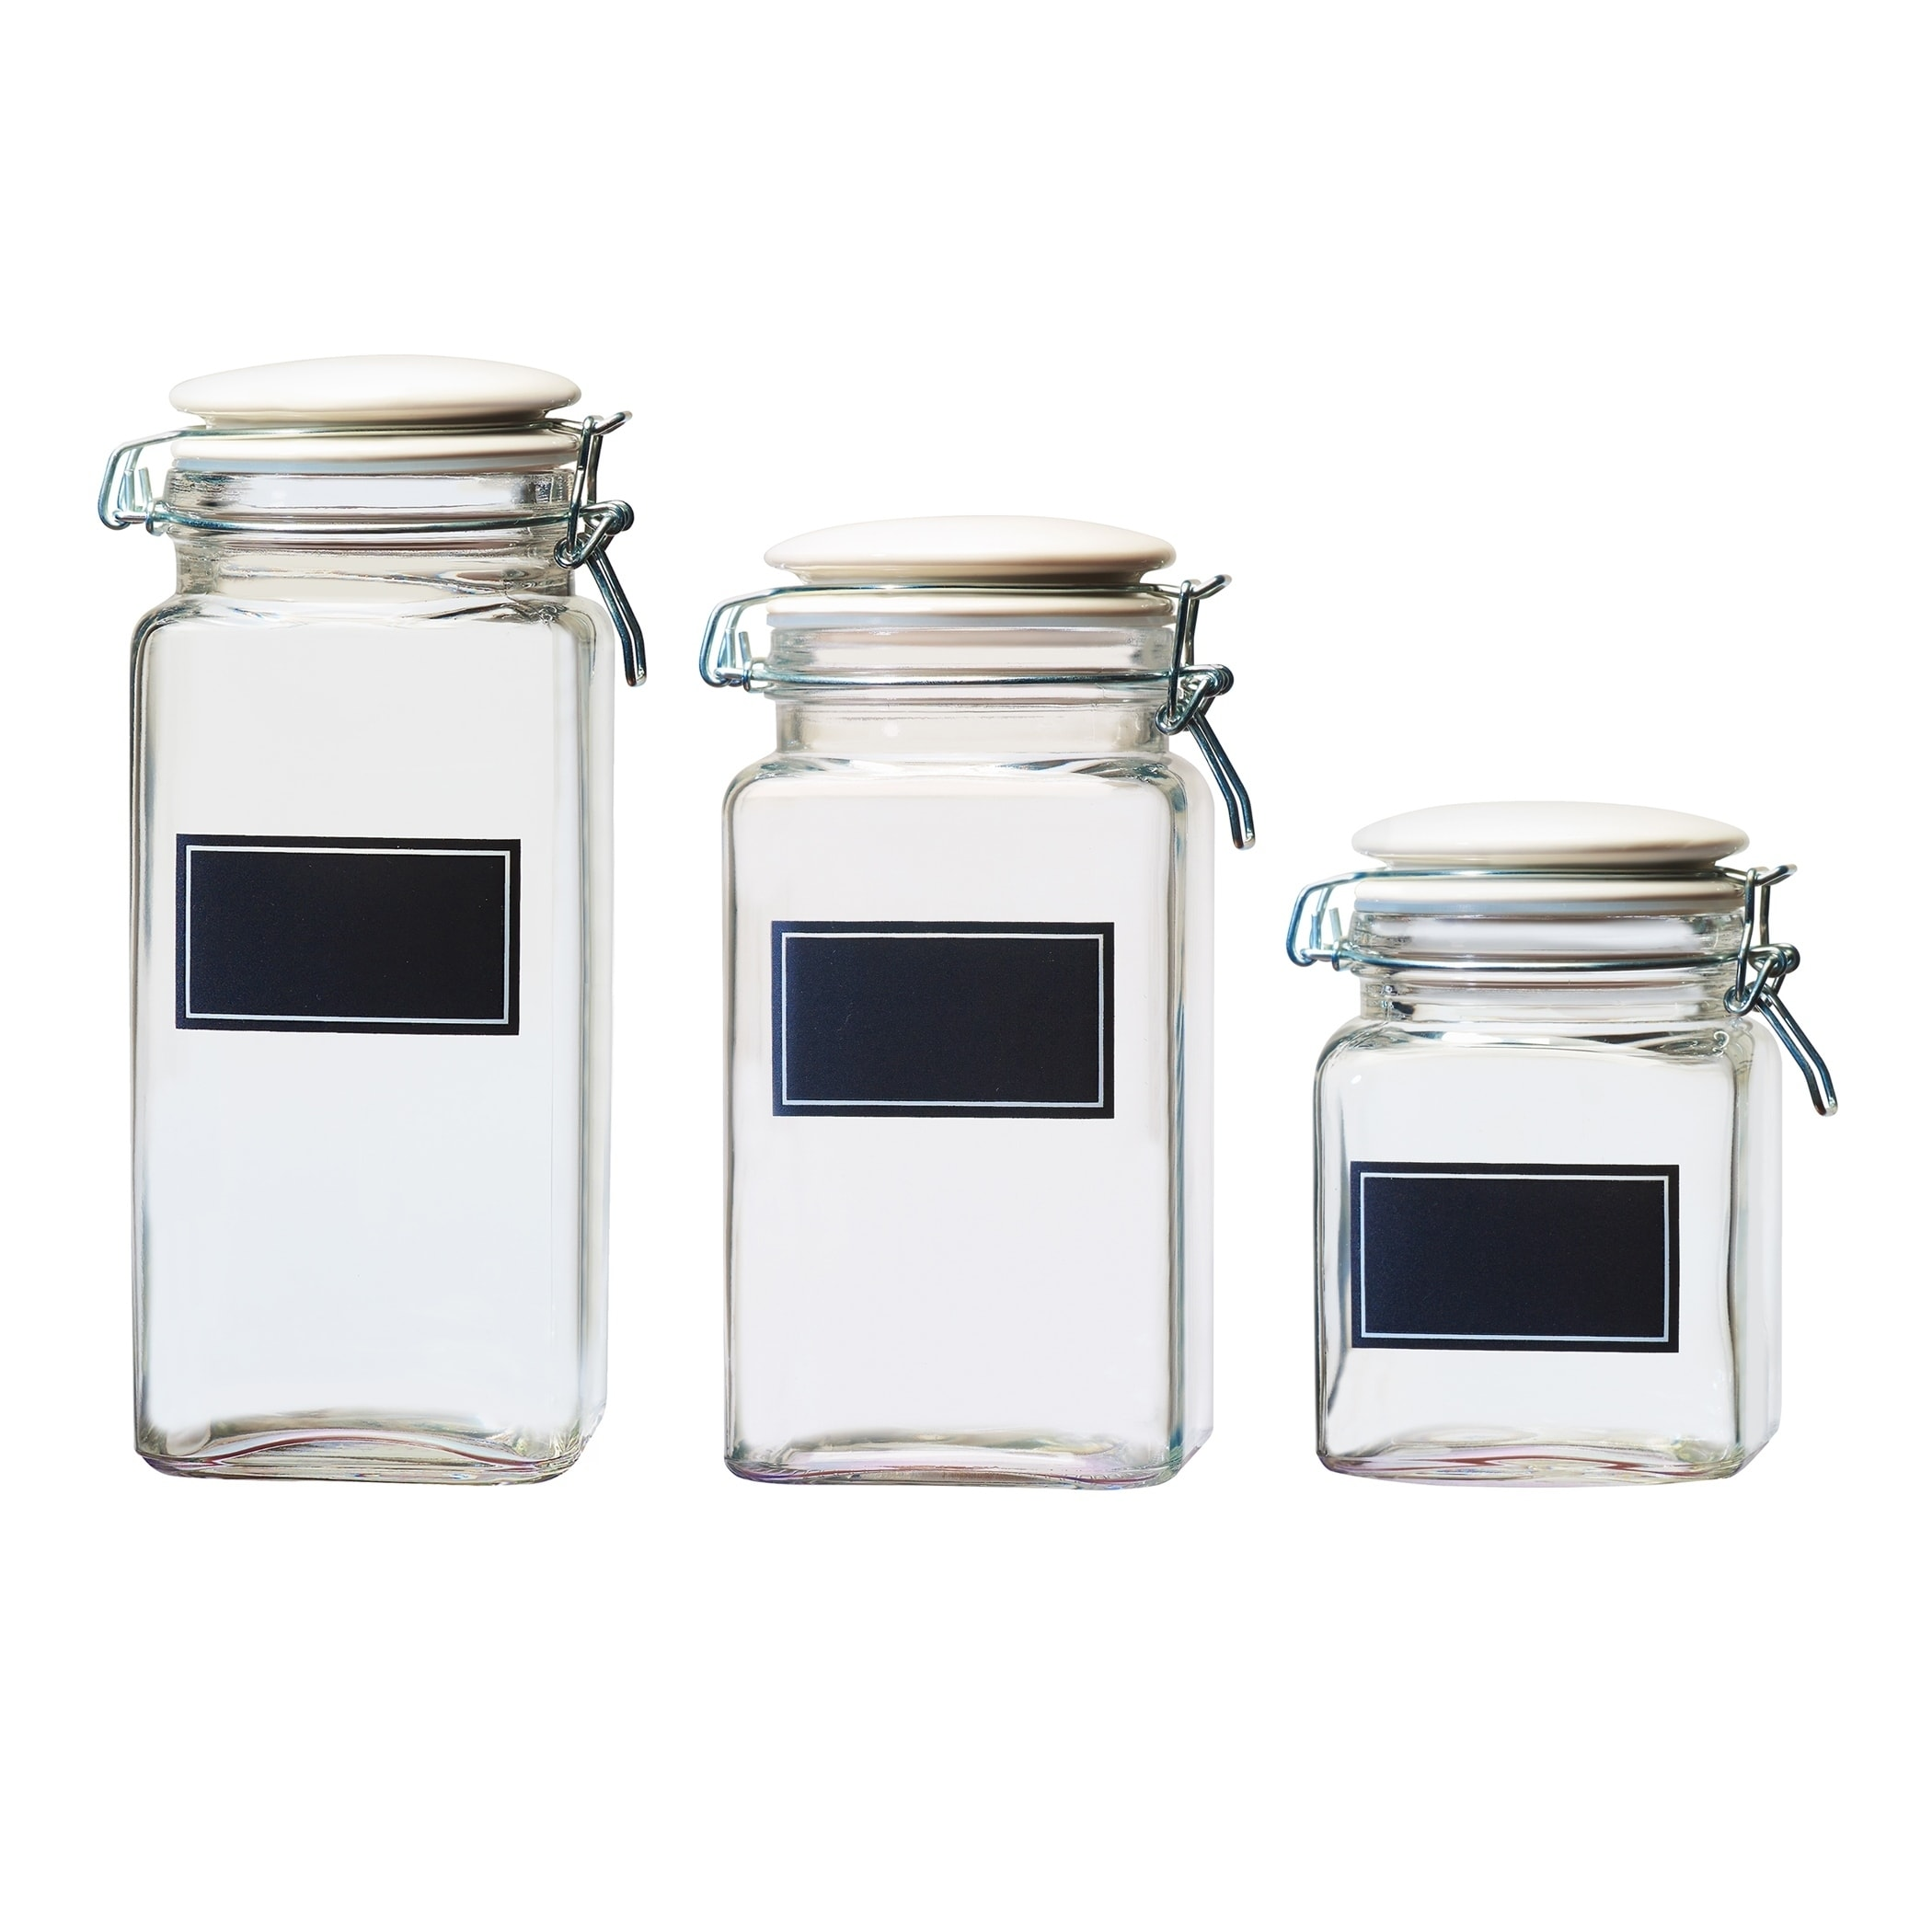 Cresta Chalkboard Hermetic Preserving Gl Canisters Orted Set Of 3 Small Medium And Large Free Shipping On Orders Over 45